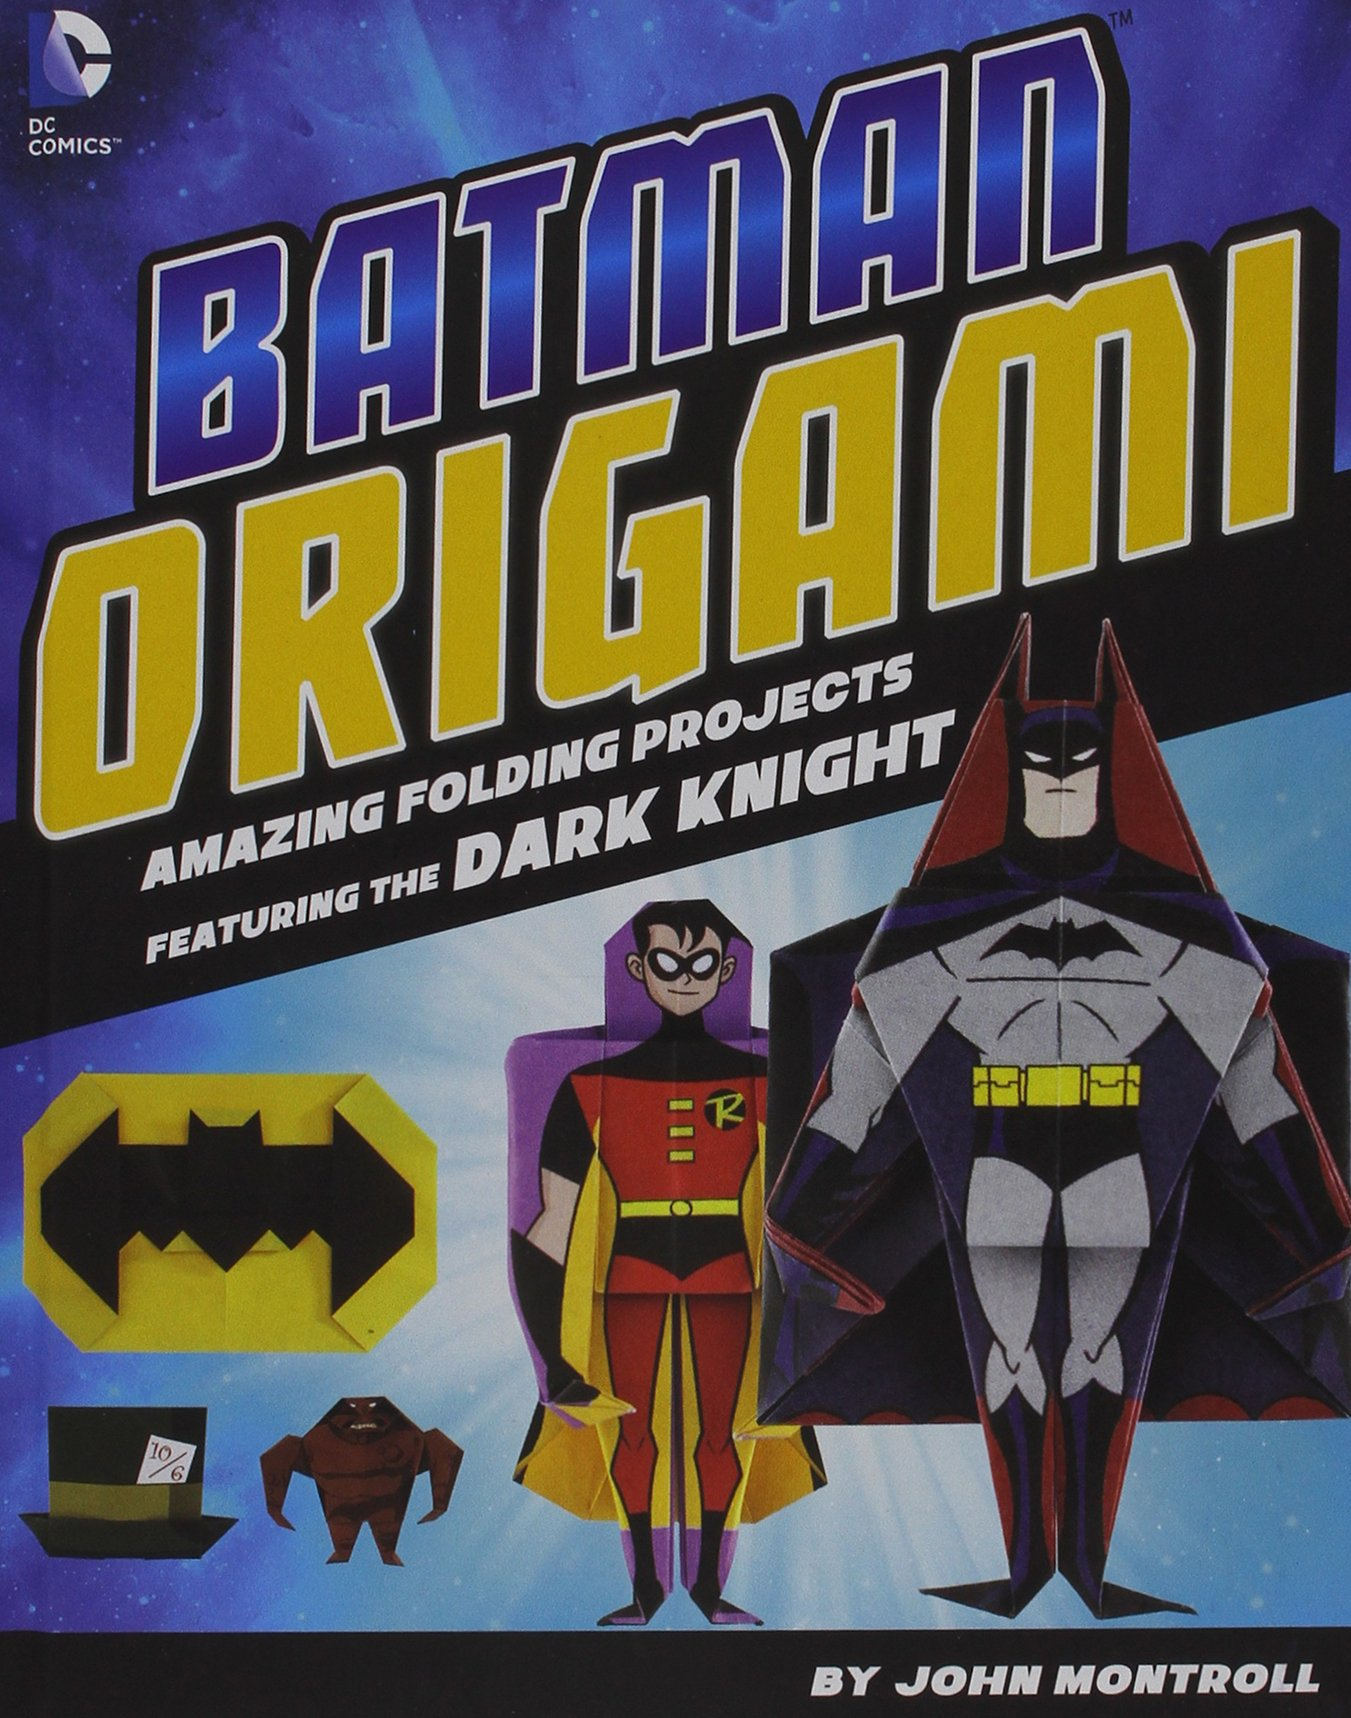 Batman Origami Amazing Folding Projects Featuring The Dark Knight